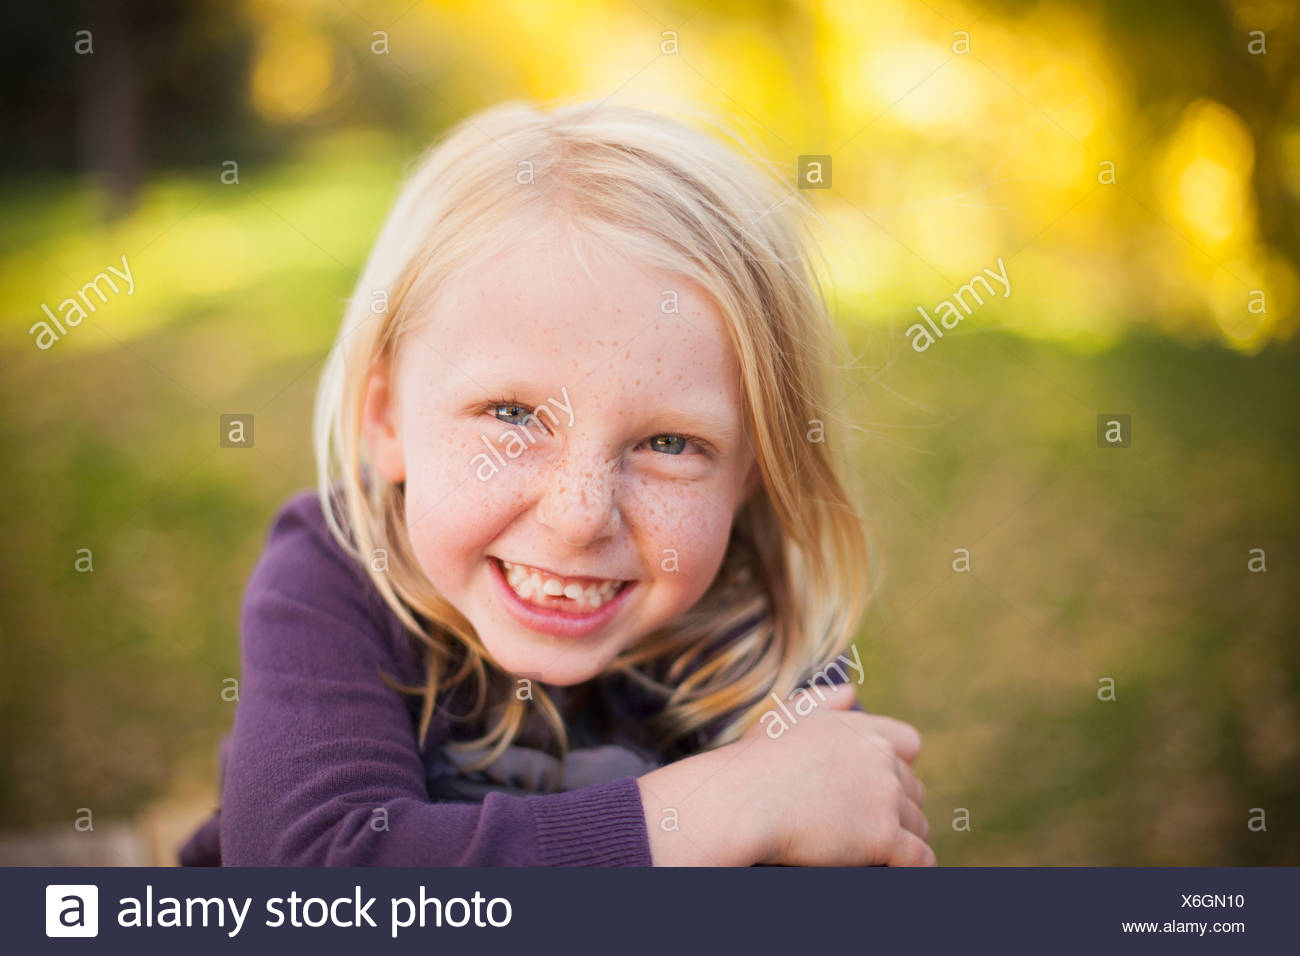 A girl sitting on the grass, smiling a big toothy smile. Close up. - Stock Image